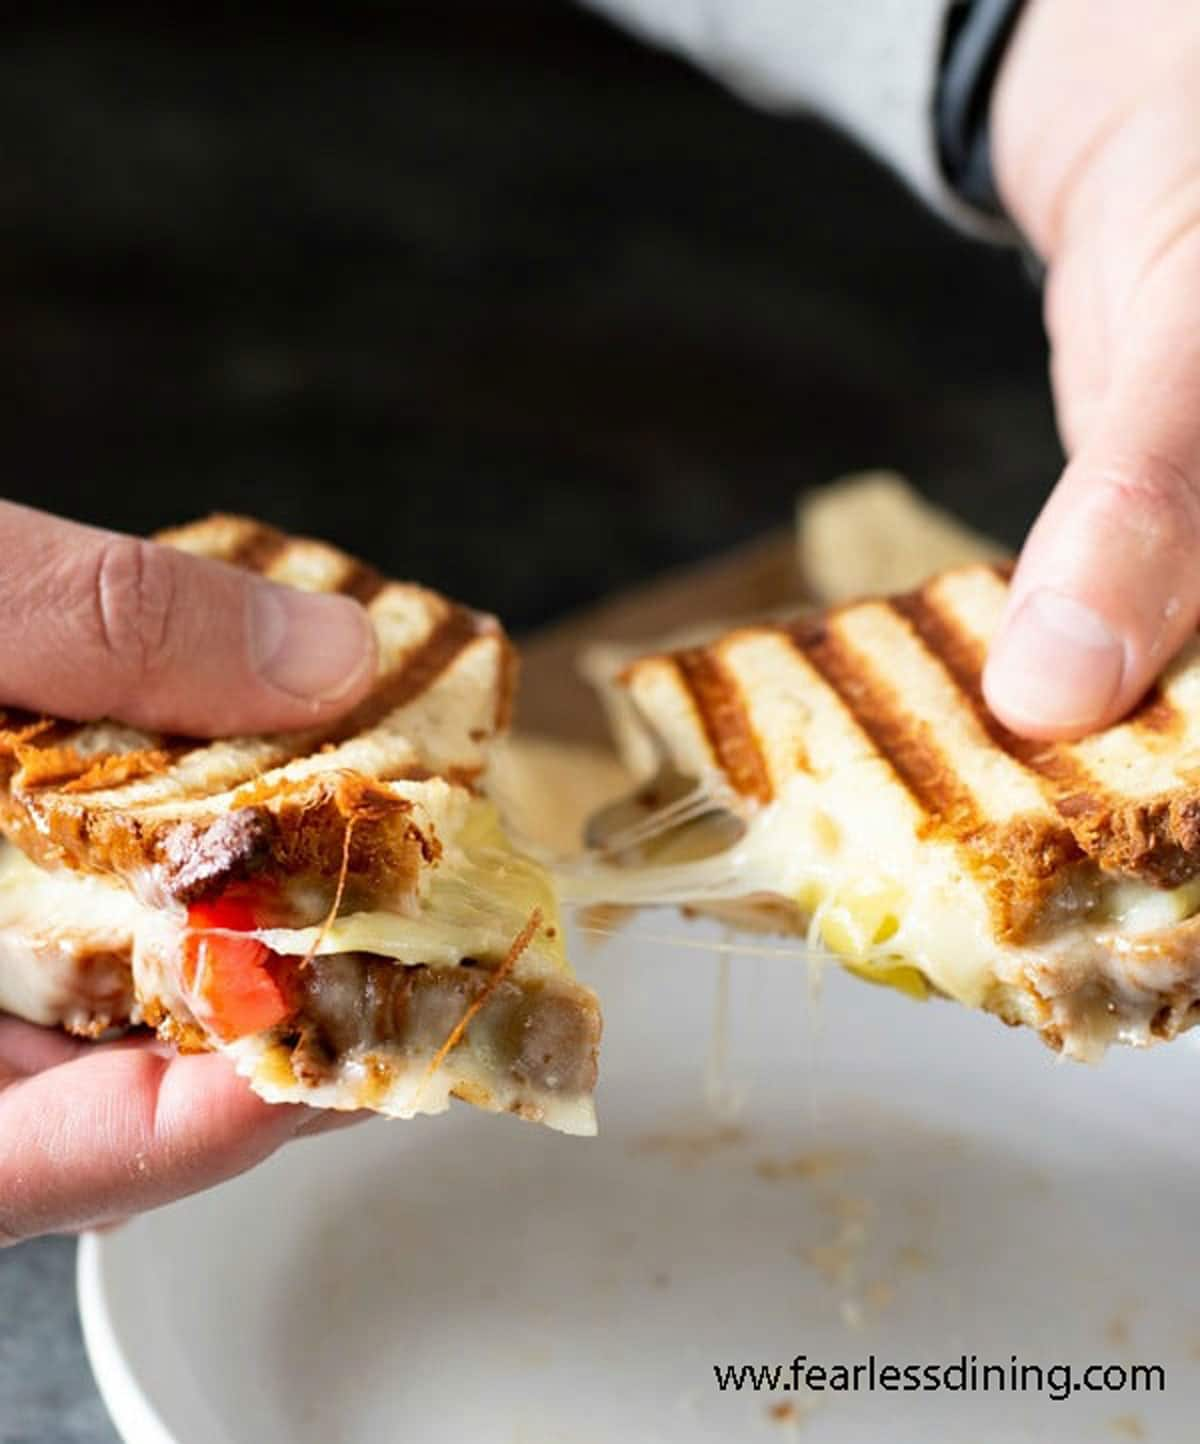 holding a panini with stretching melted cheese